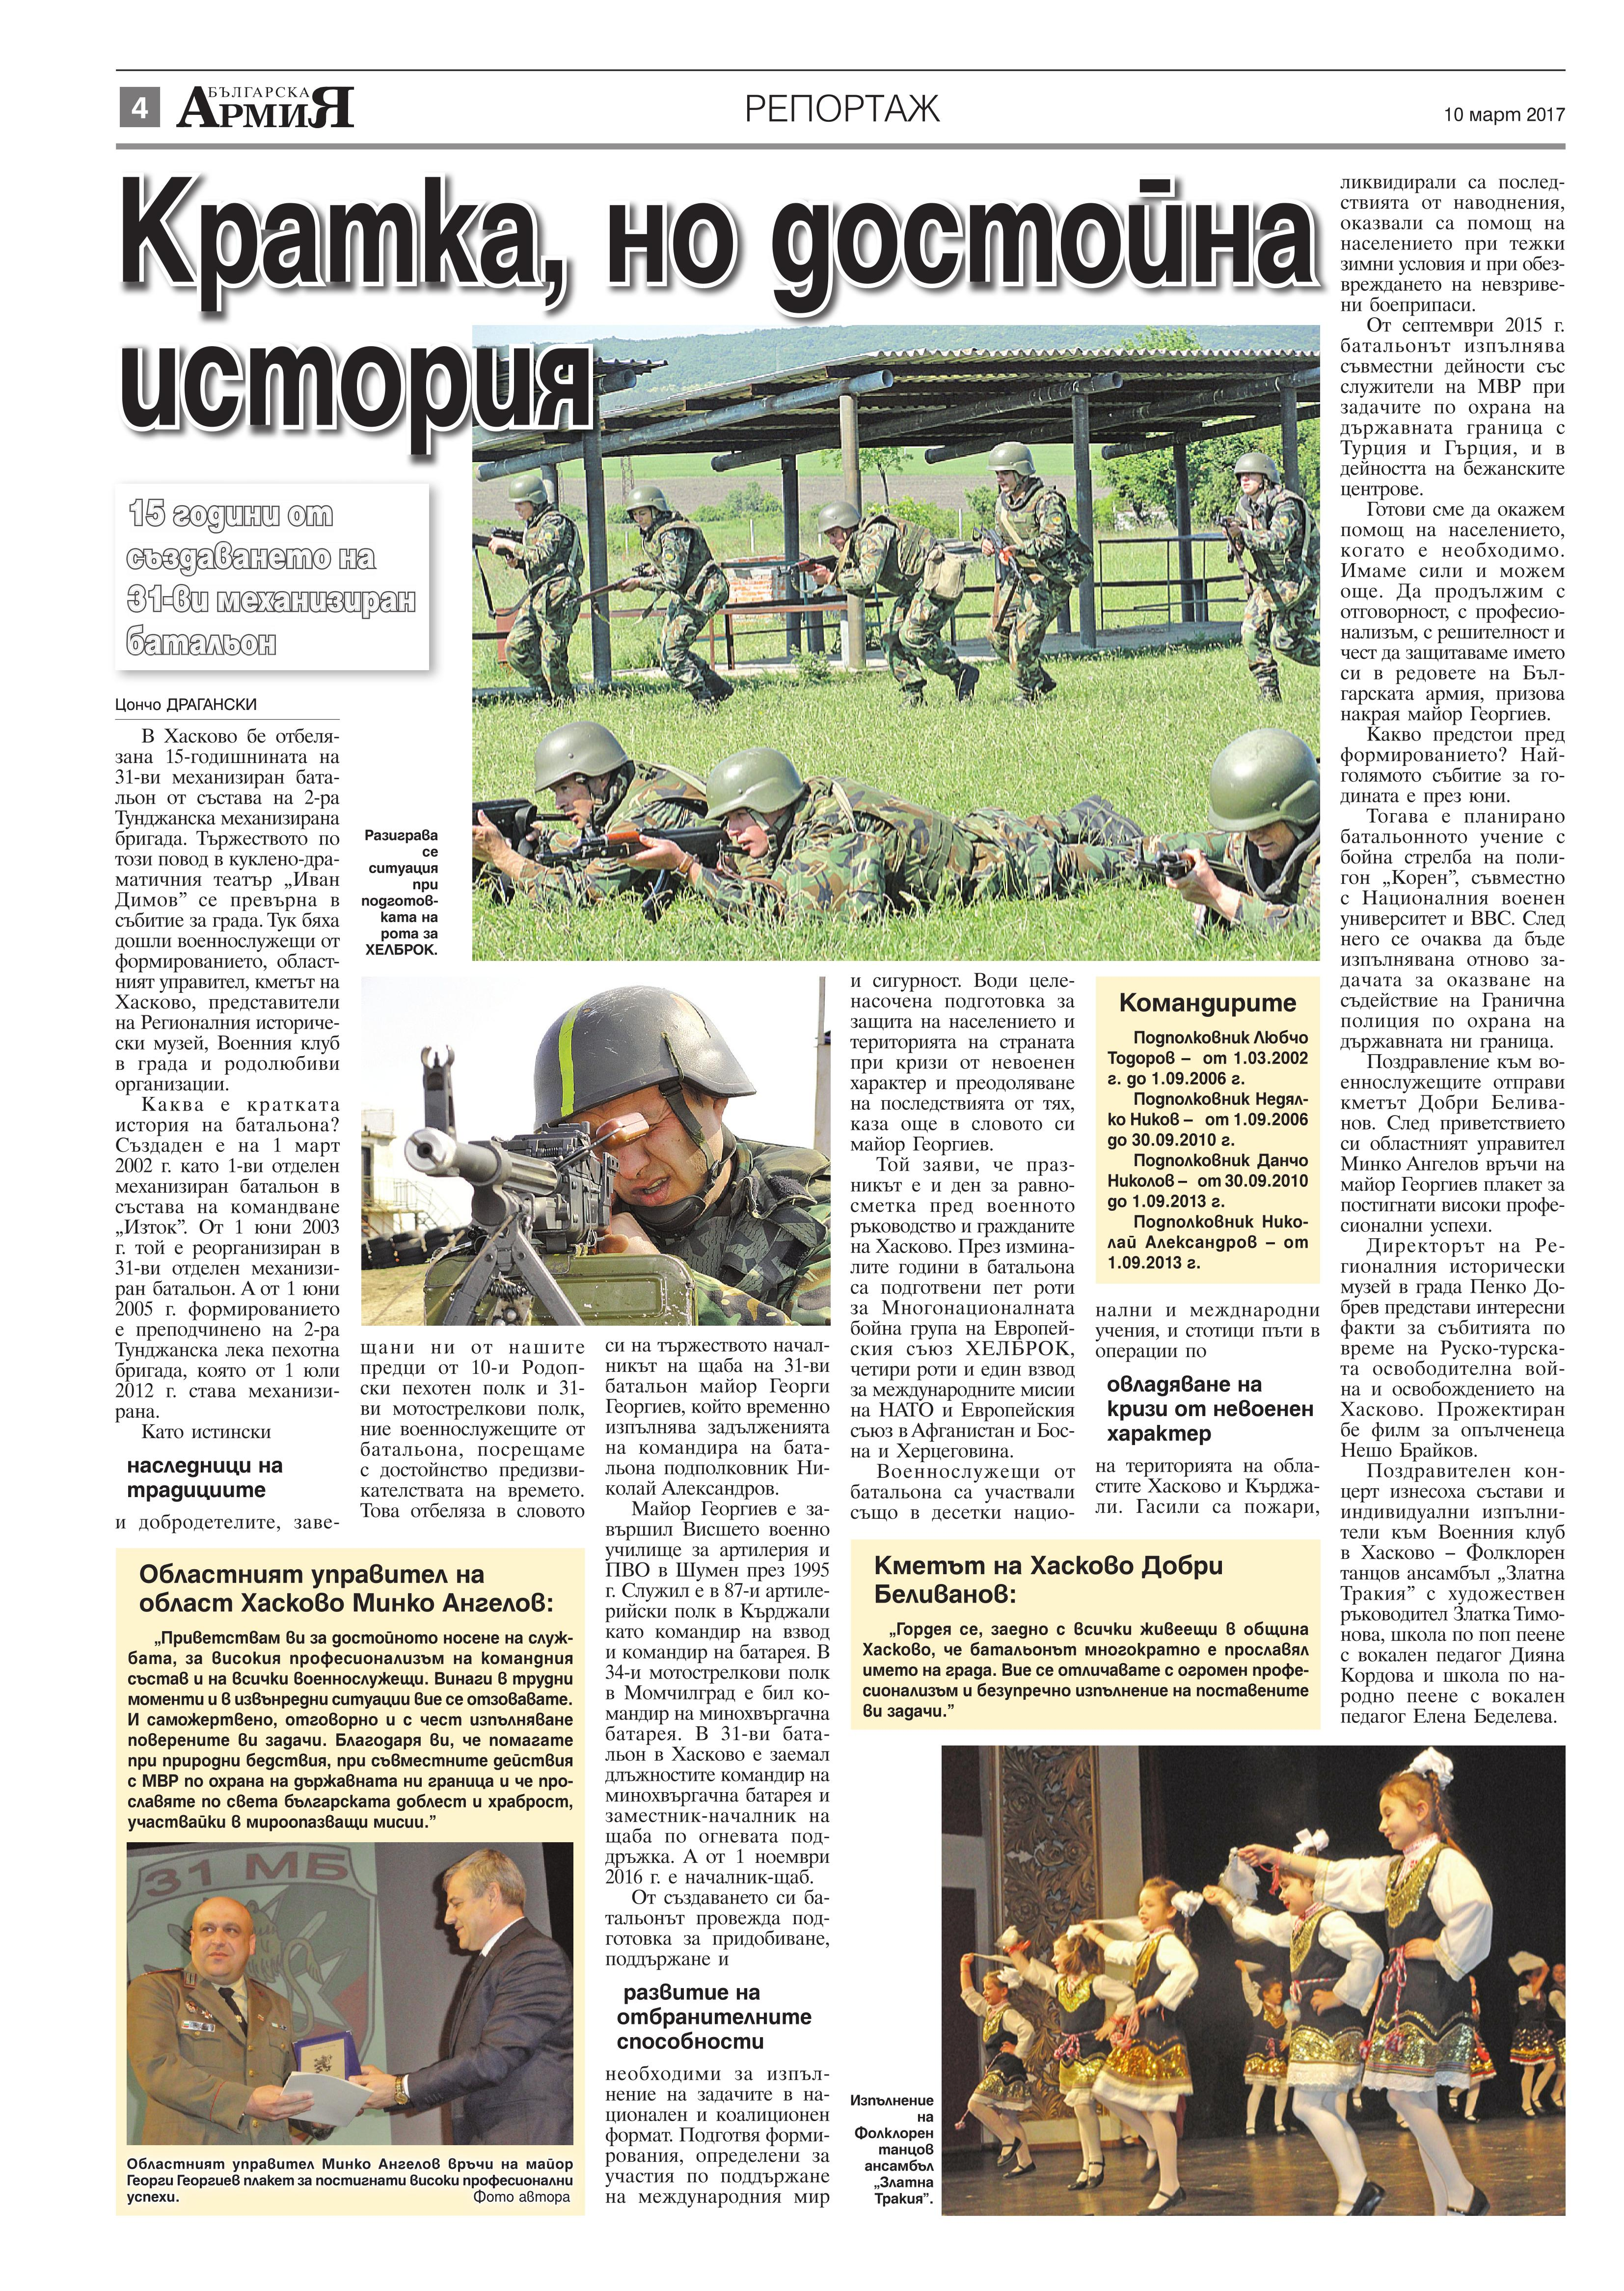 https://www.armymedia.bg/wp-content/uploads/2015/06/04.page1_-16.jpg